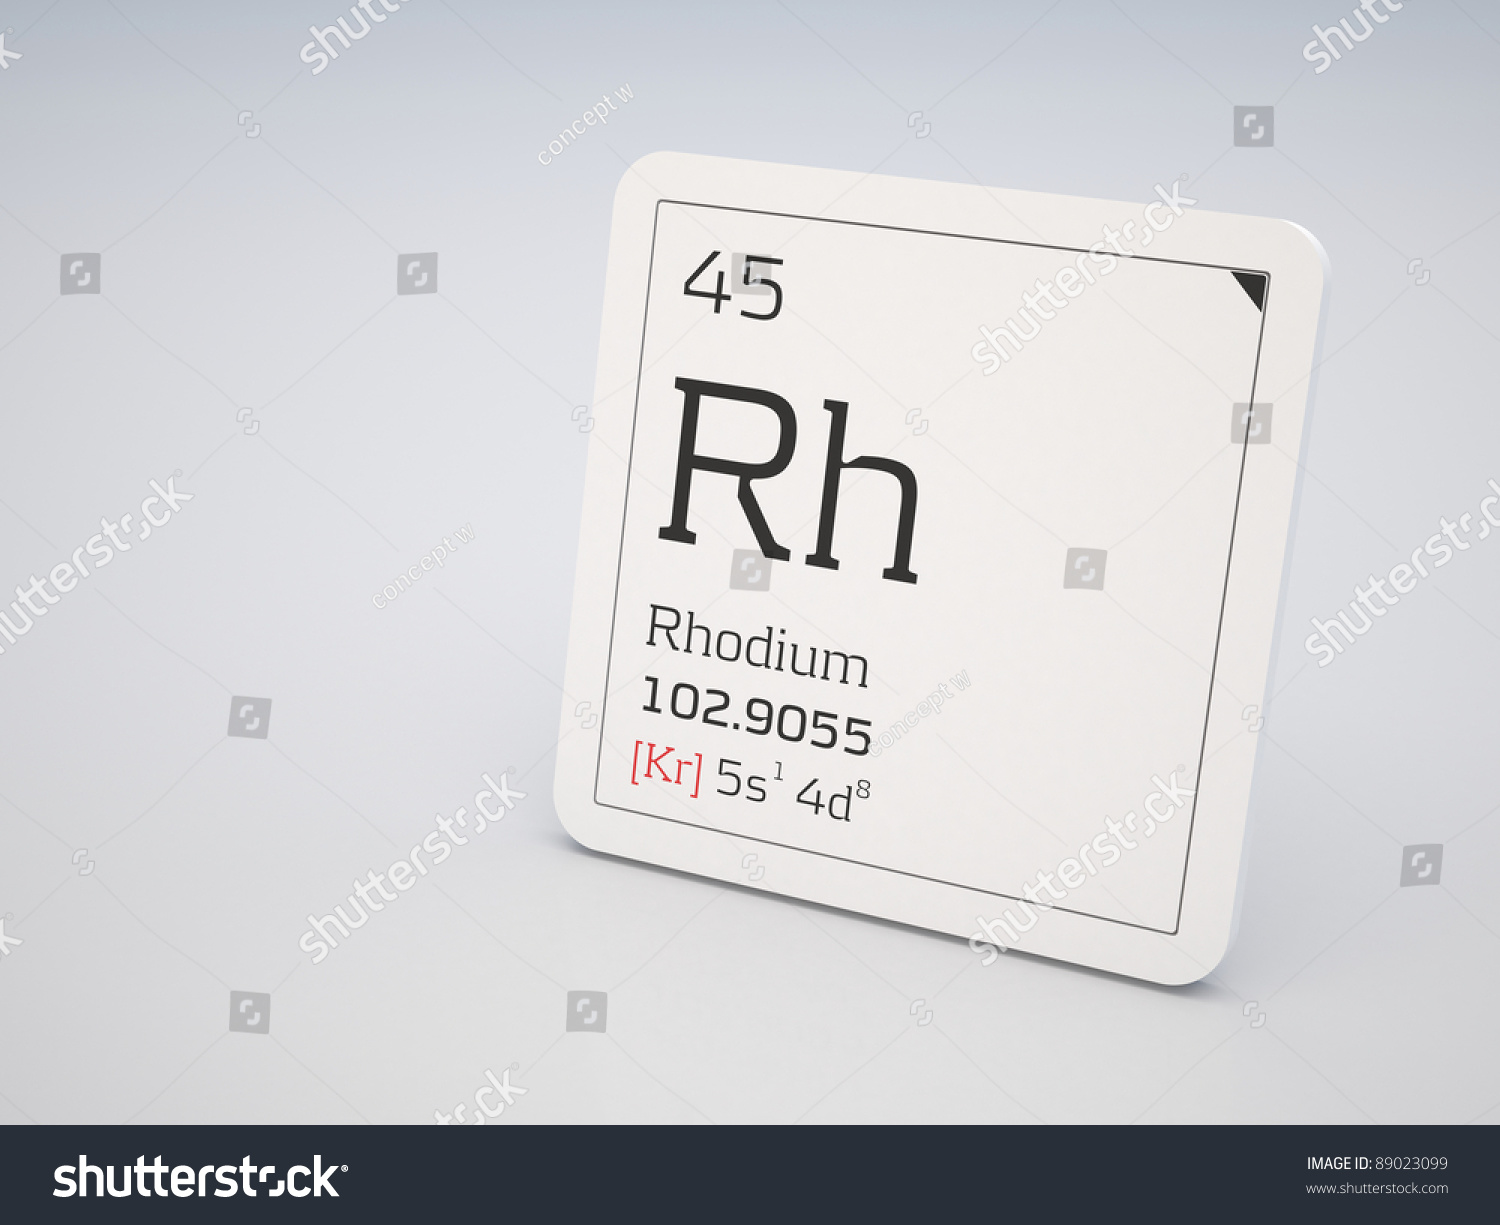 Rhodium element periodic table stock illustration 89023099 rhodium element of the periodic table gamestrikefo Image collections